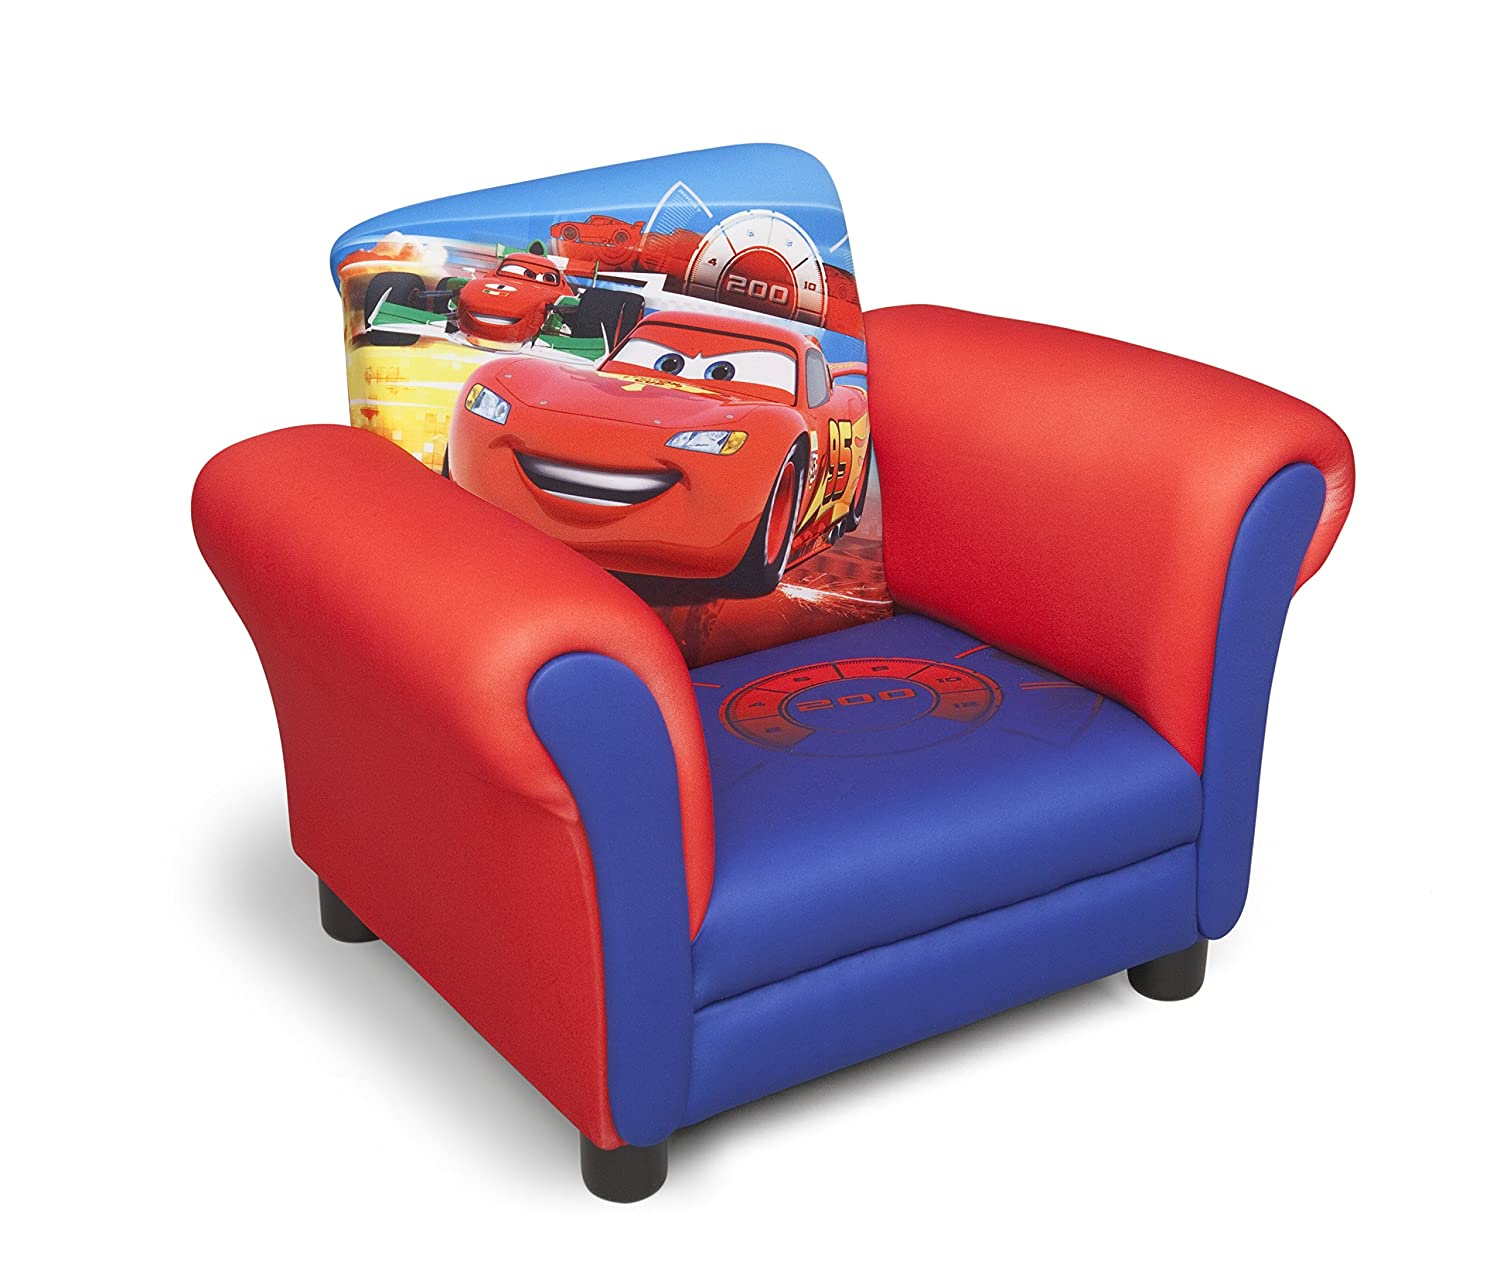 Amazon.com: Delta Children Upholstered Chair, Nickelodeon SpongeBob: Baby